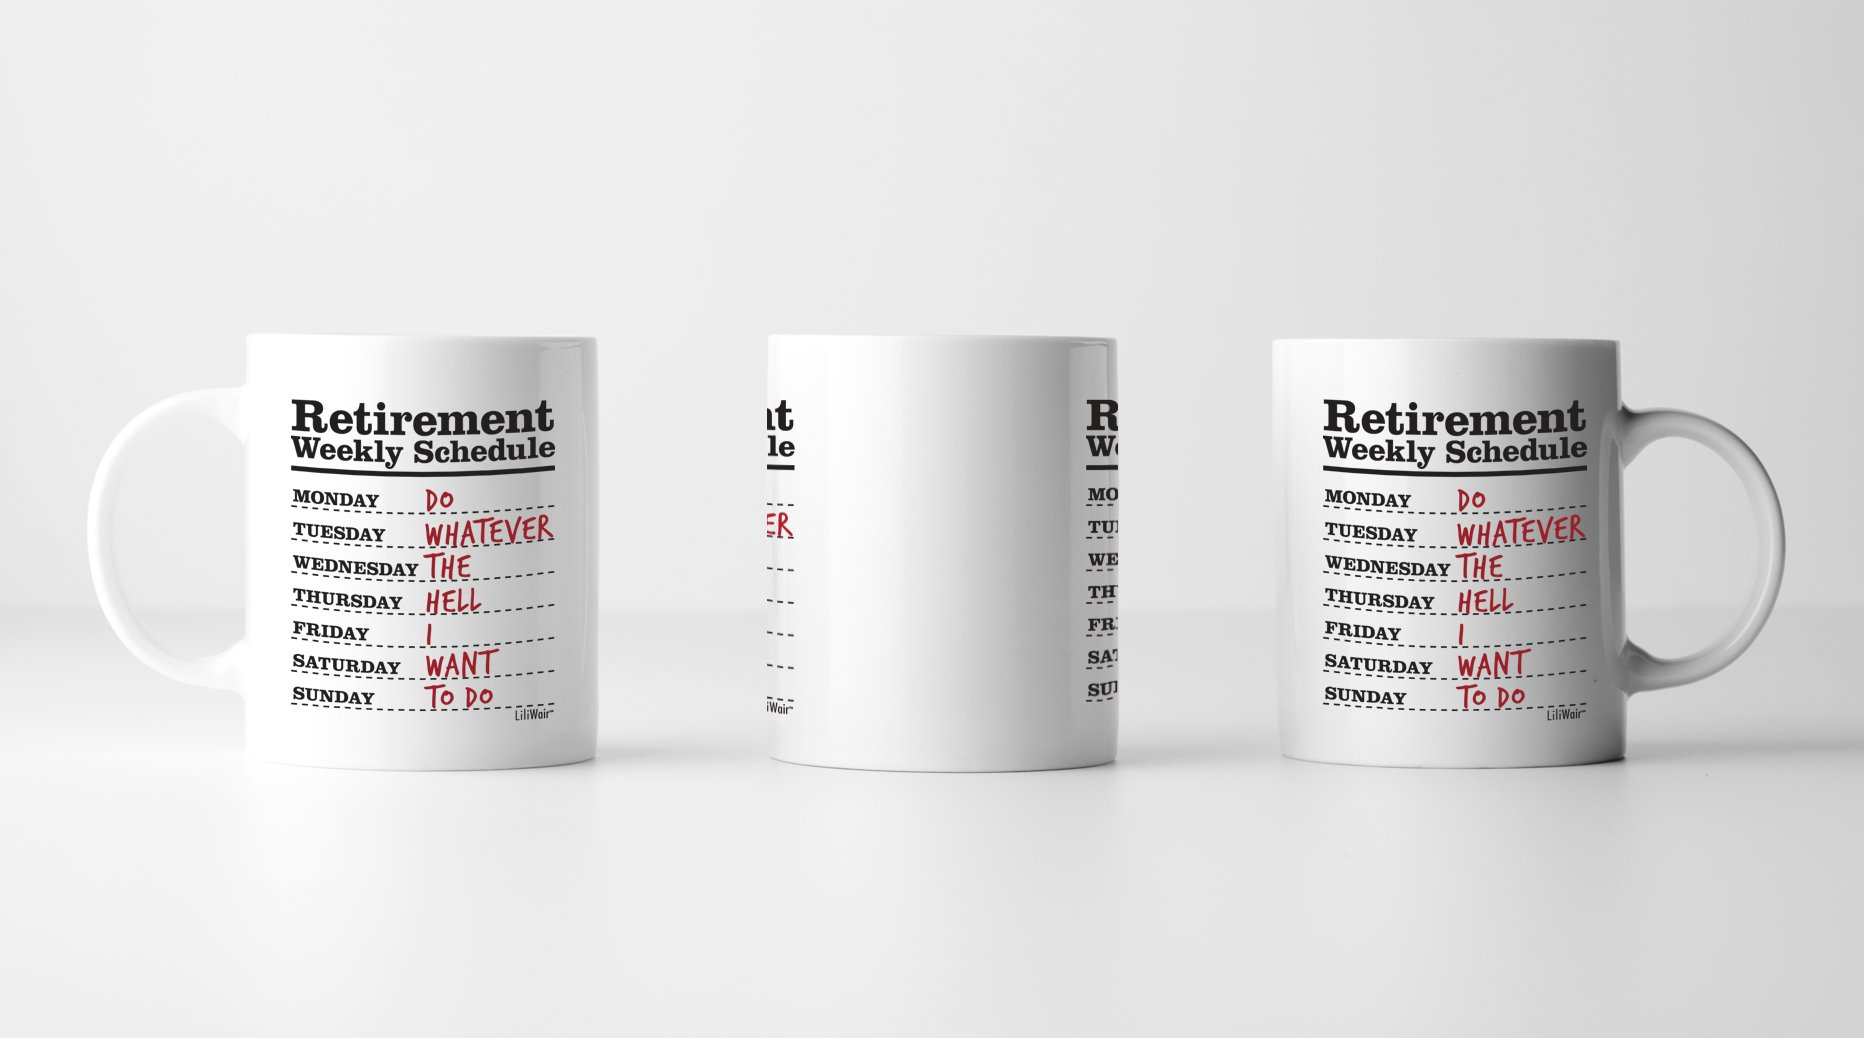 Funny Retirement Gifts for Women Men Dad Mom. Retirement Coffee Mug Gift. Retired Schedule Calendar Mugs for Coworkers Office & Family. Unique Novelty Ideas for Her Nurses Navy Air Force Military Gag by LiliWair (Image #3)